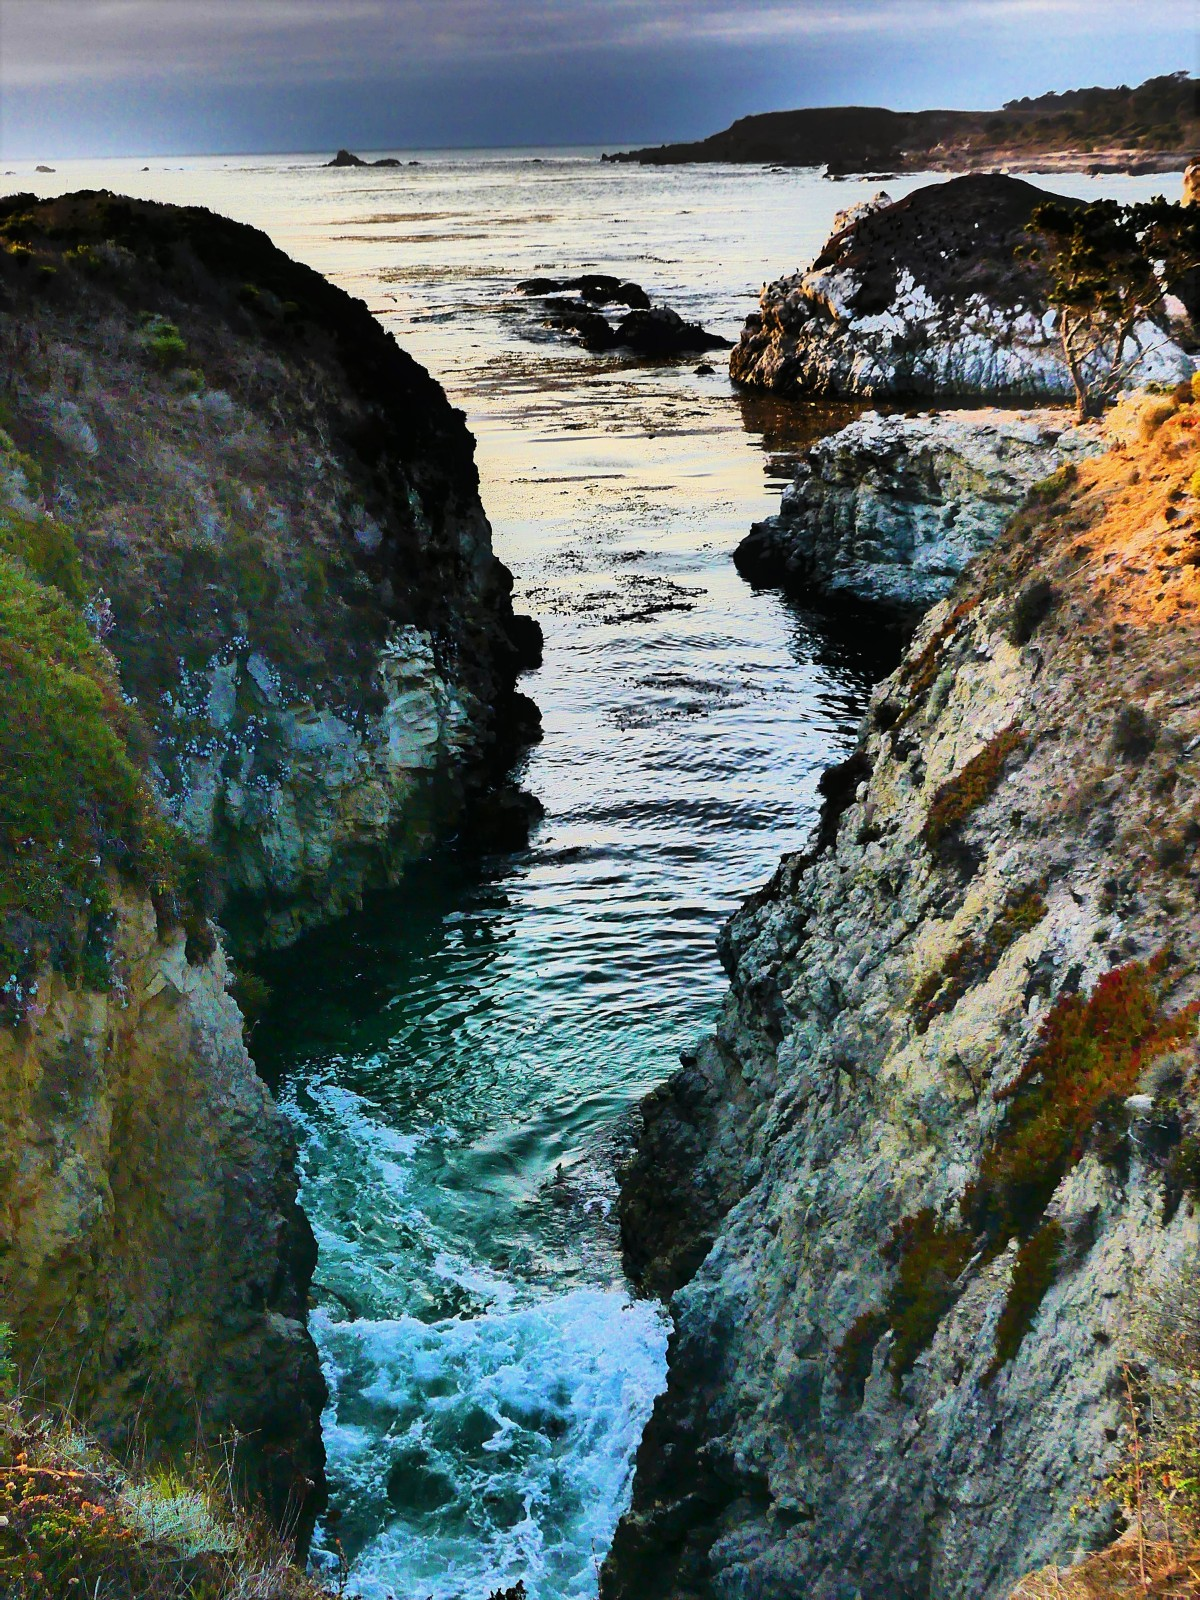 Point Lobos rocks